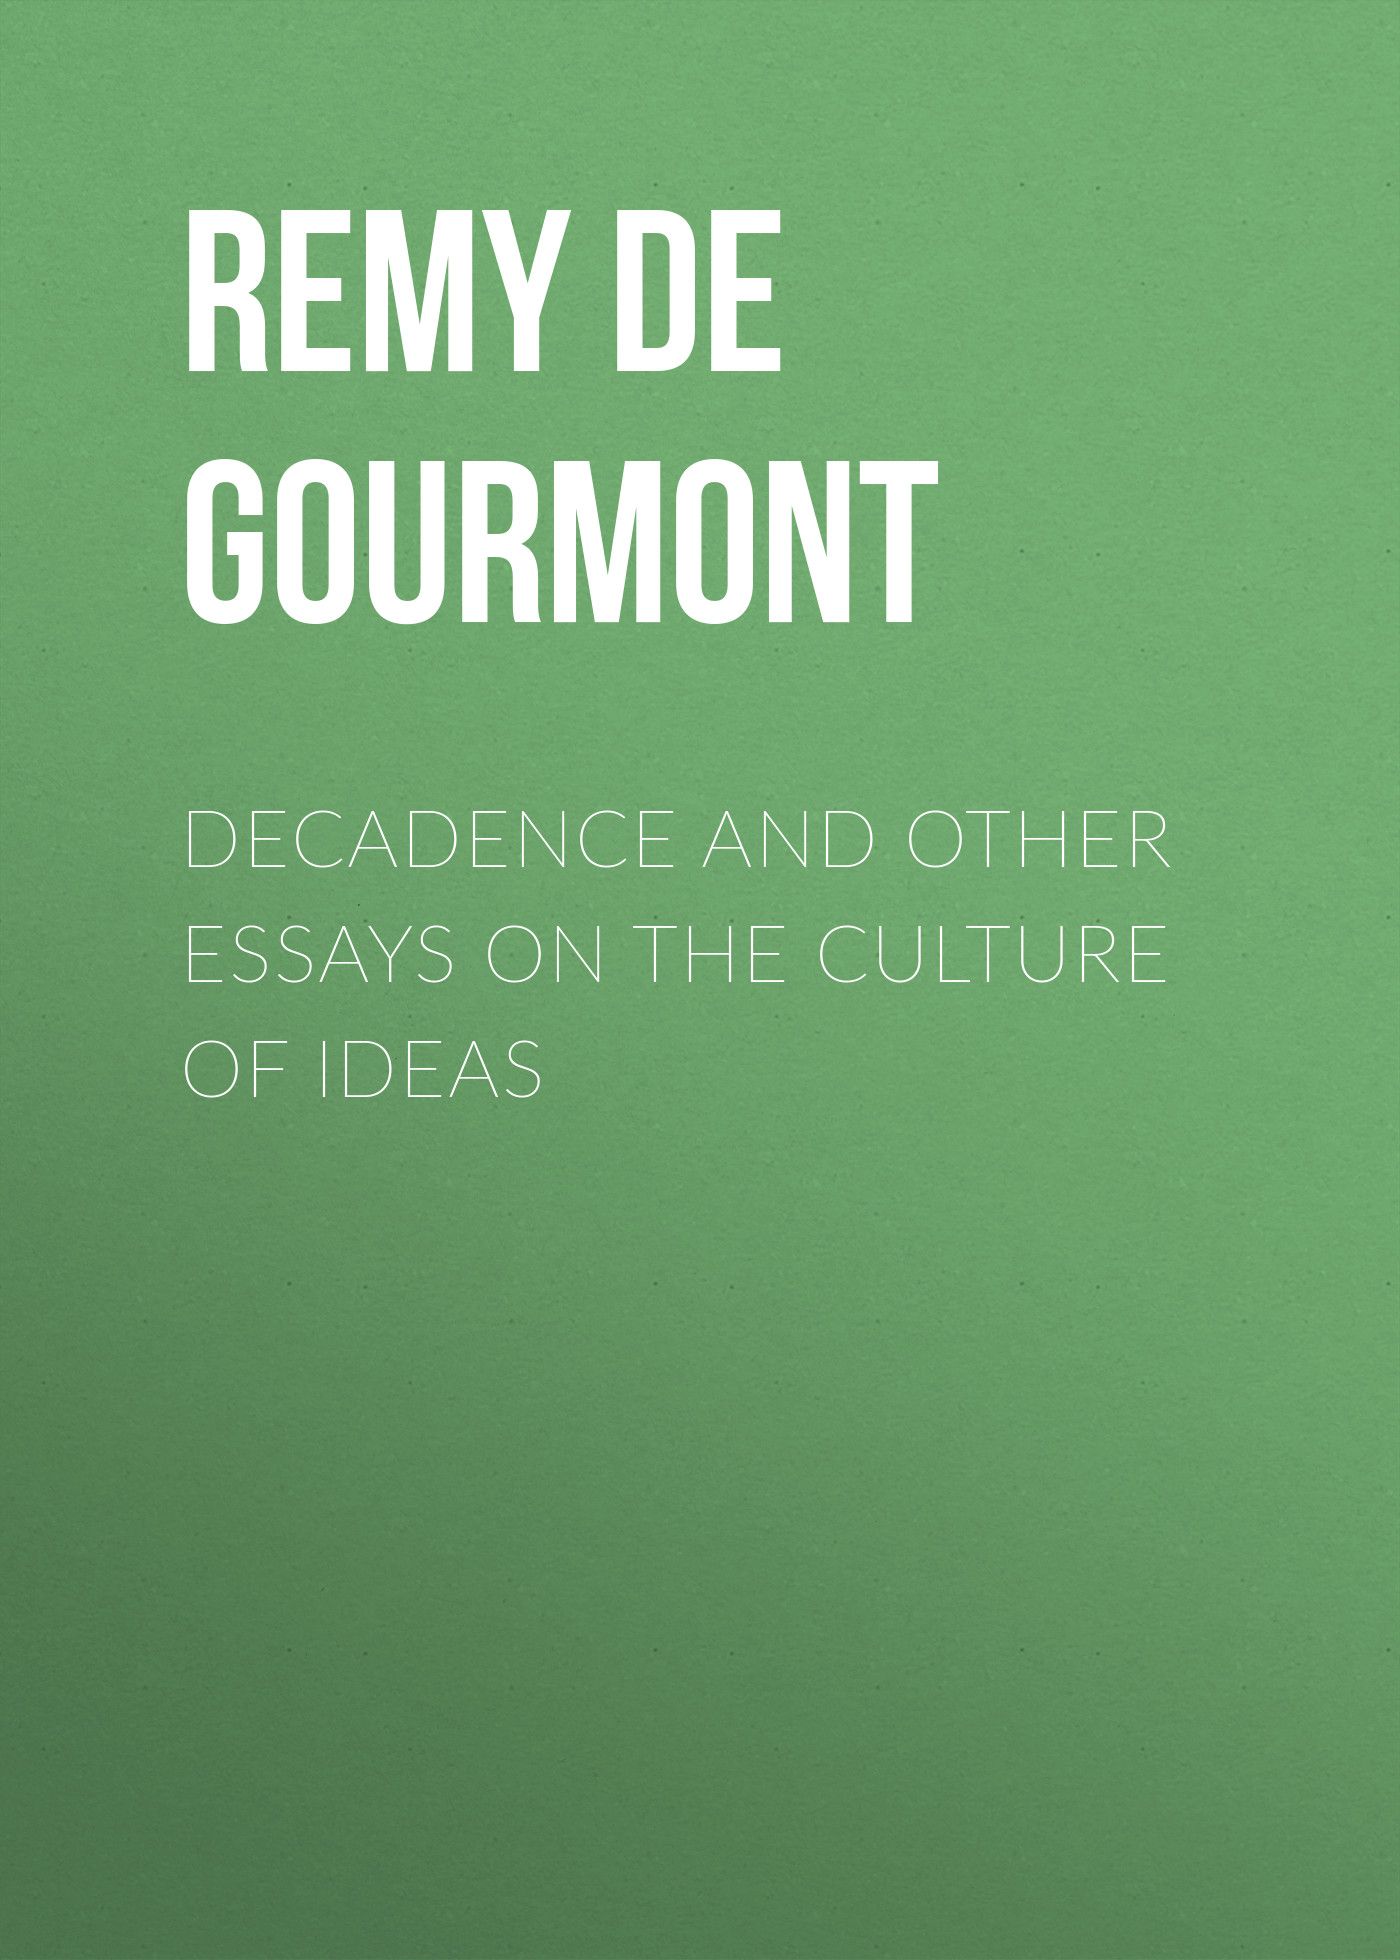 Remy de Gourmont Decadence and Other Essays on the Culture of Ideas boris collardi f j private banking building a culture of excellence isbn 9780470826980